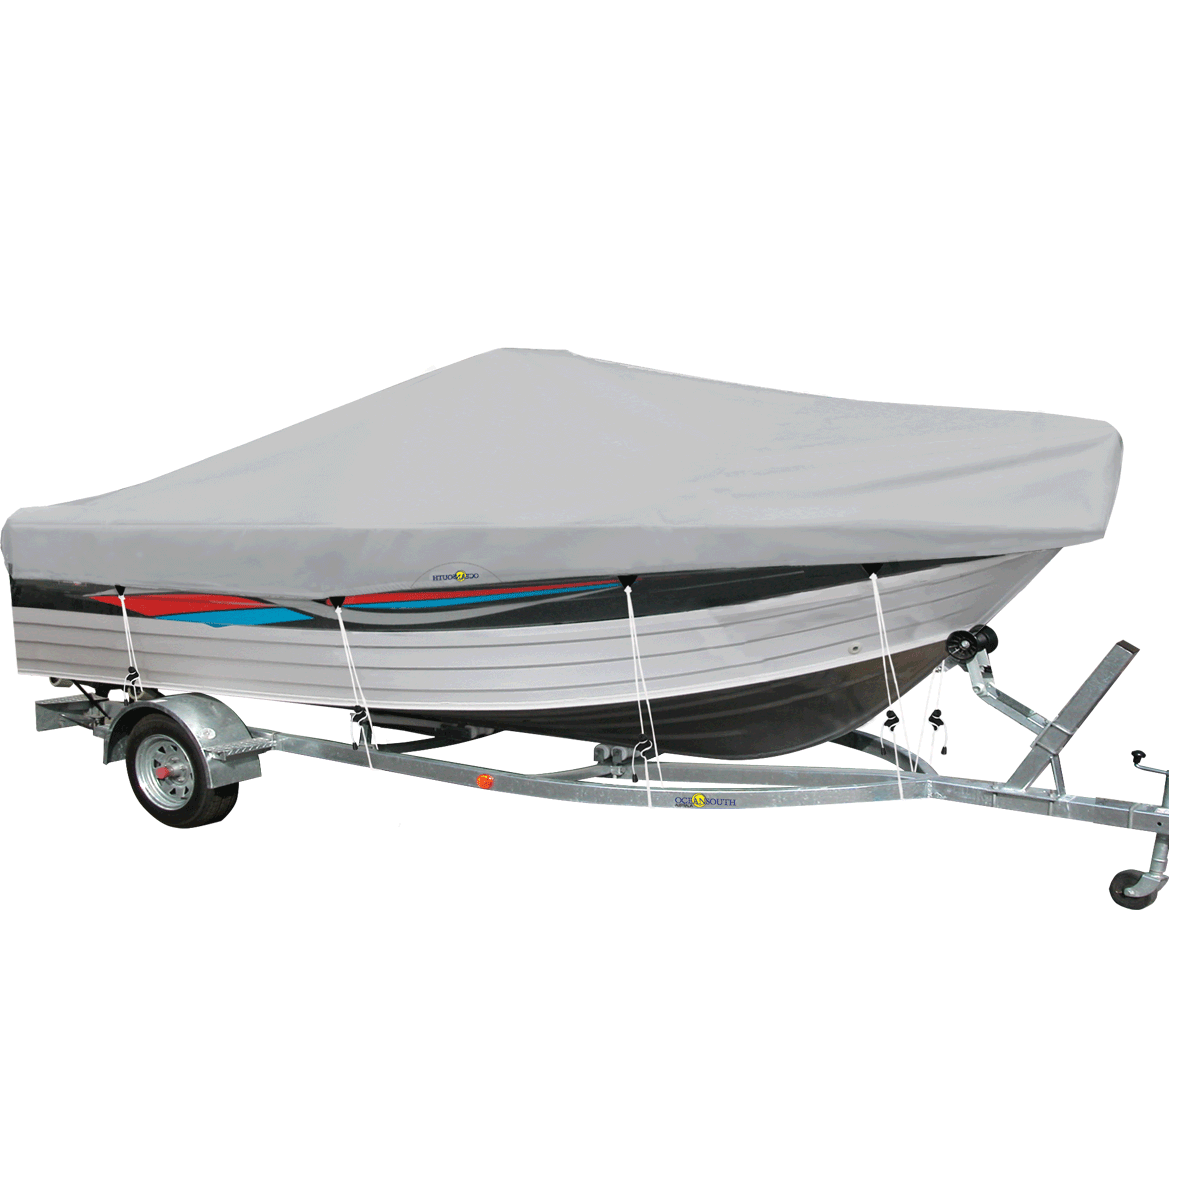 Oceansouth Boat Covers Centre Console